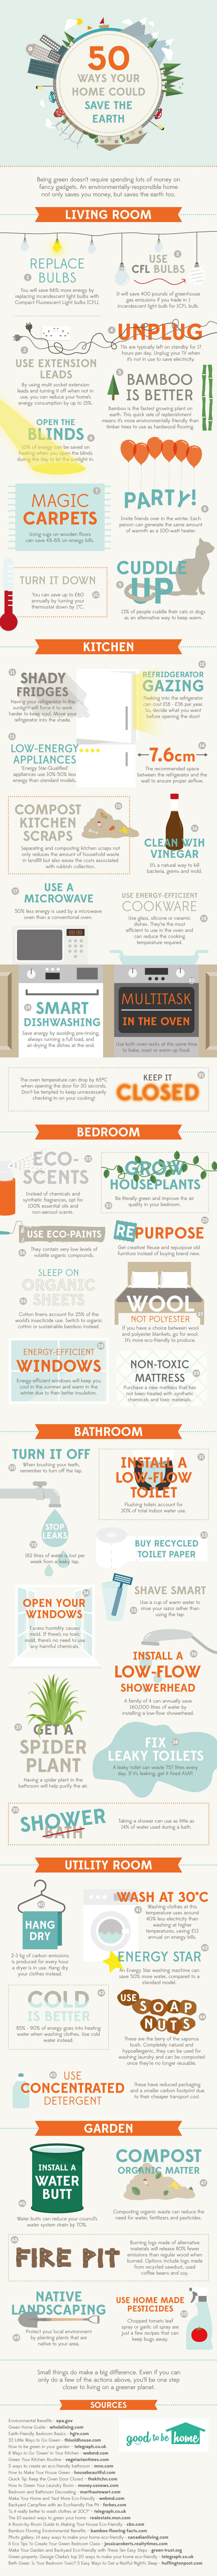 50 Ways To Make Your Home More Eco Friendly